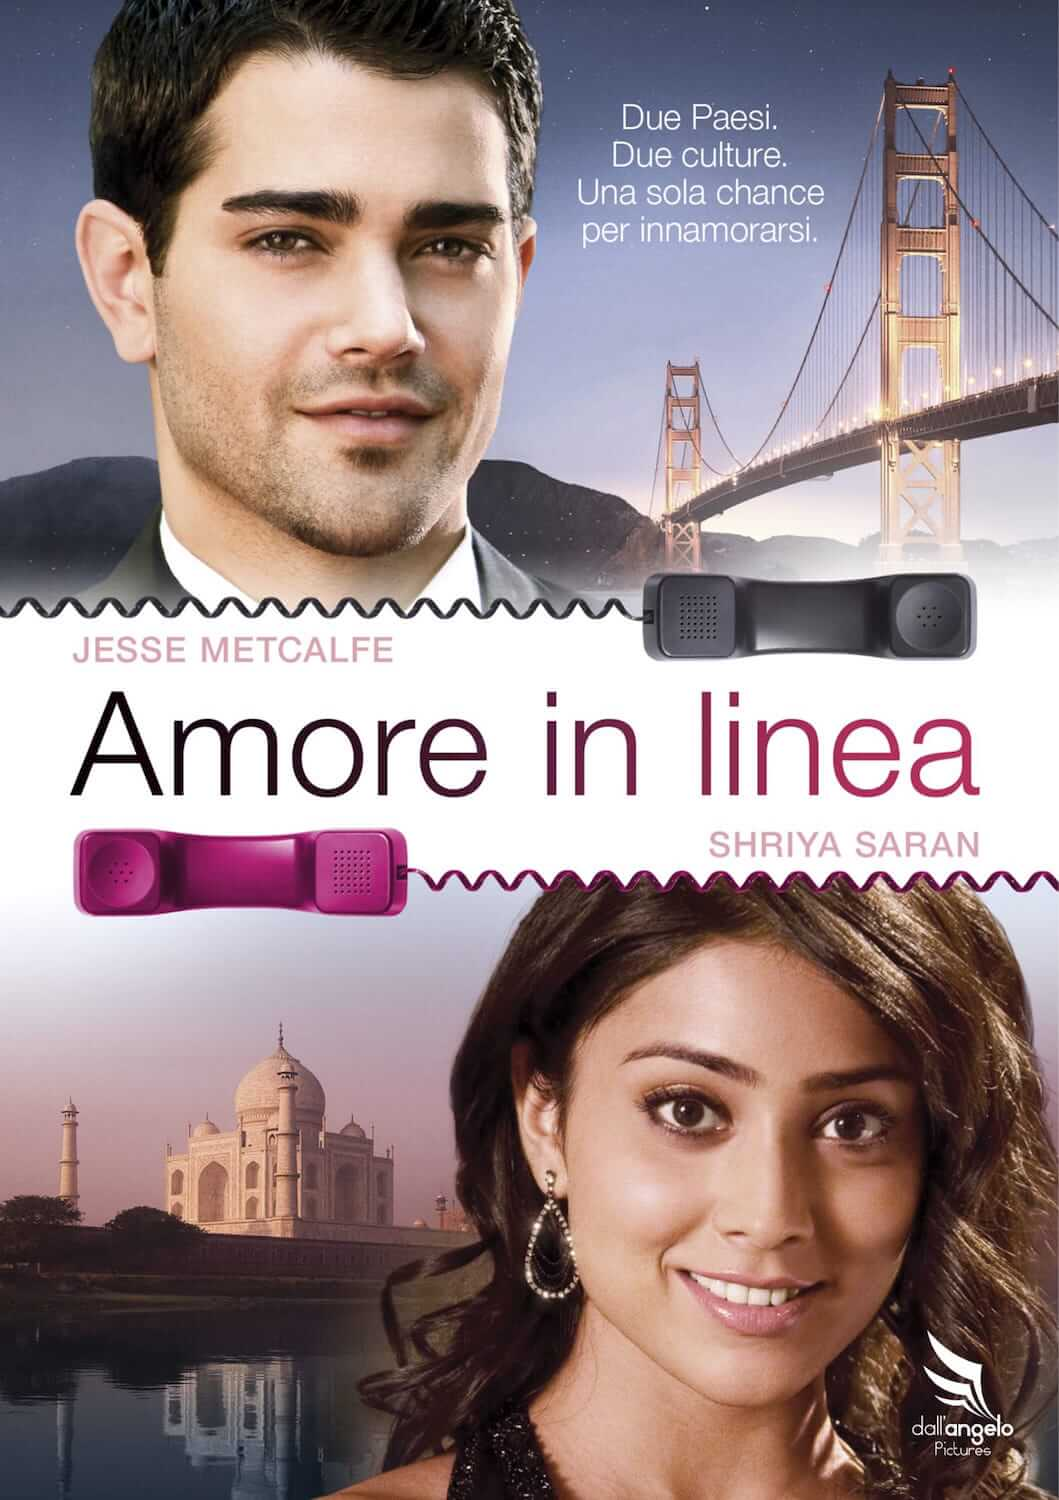 AMORE IN LINEA (THE OTHER END OF THE LINE)